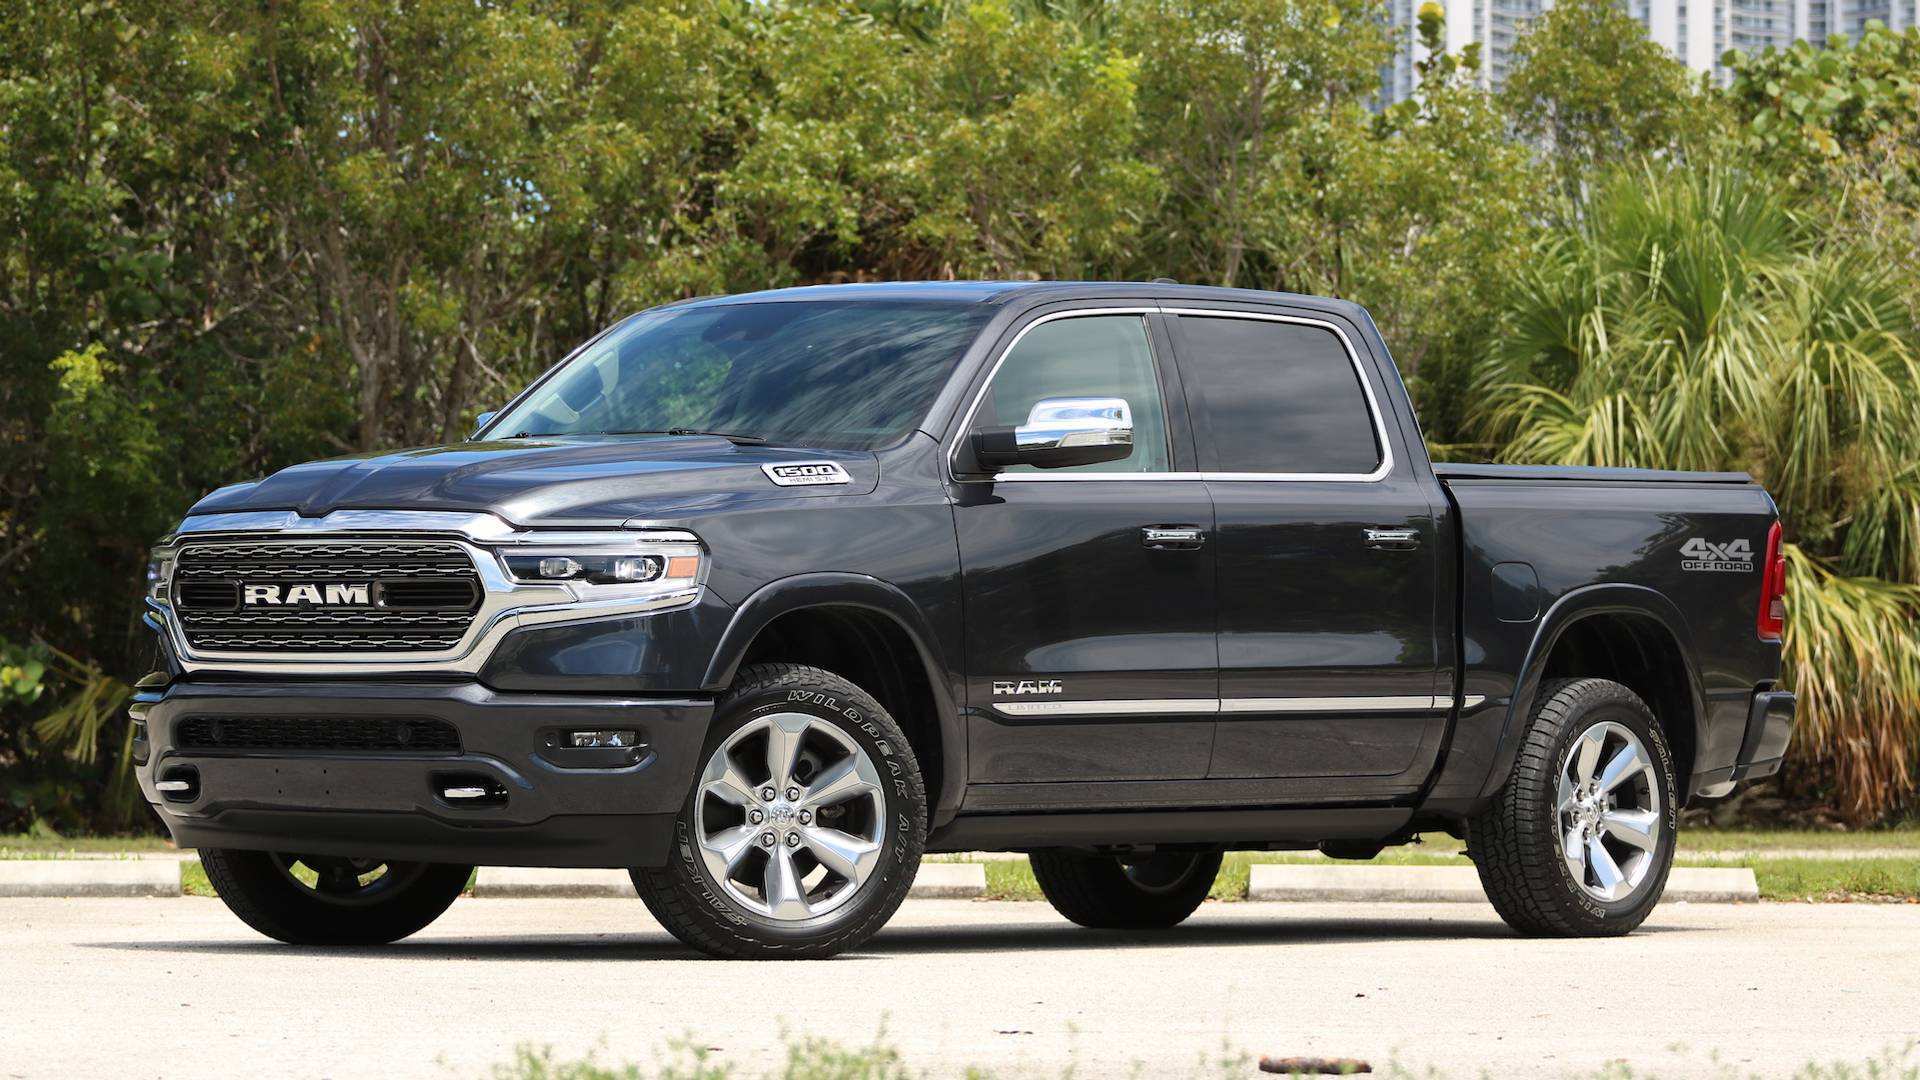 90 Gallery of Best Dodge Laramie 2019 Concept Research New for Best Dodge Laramie 2019 Concept